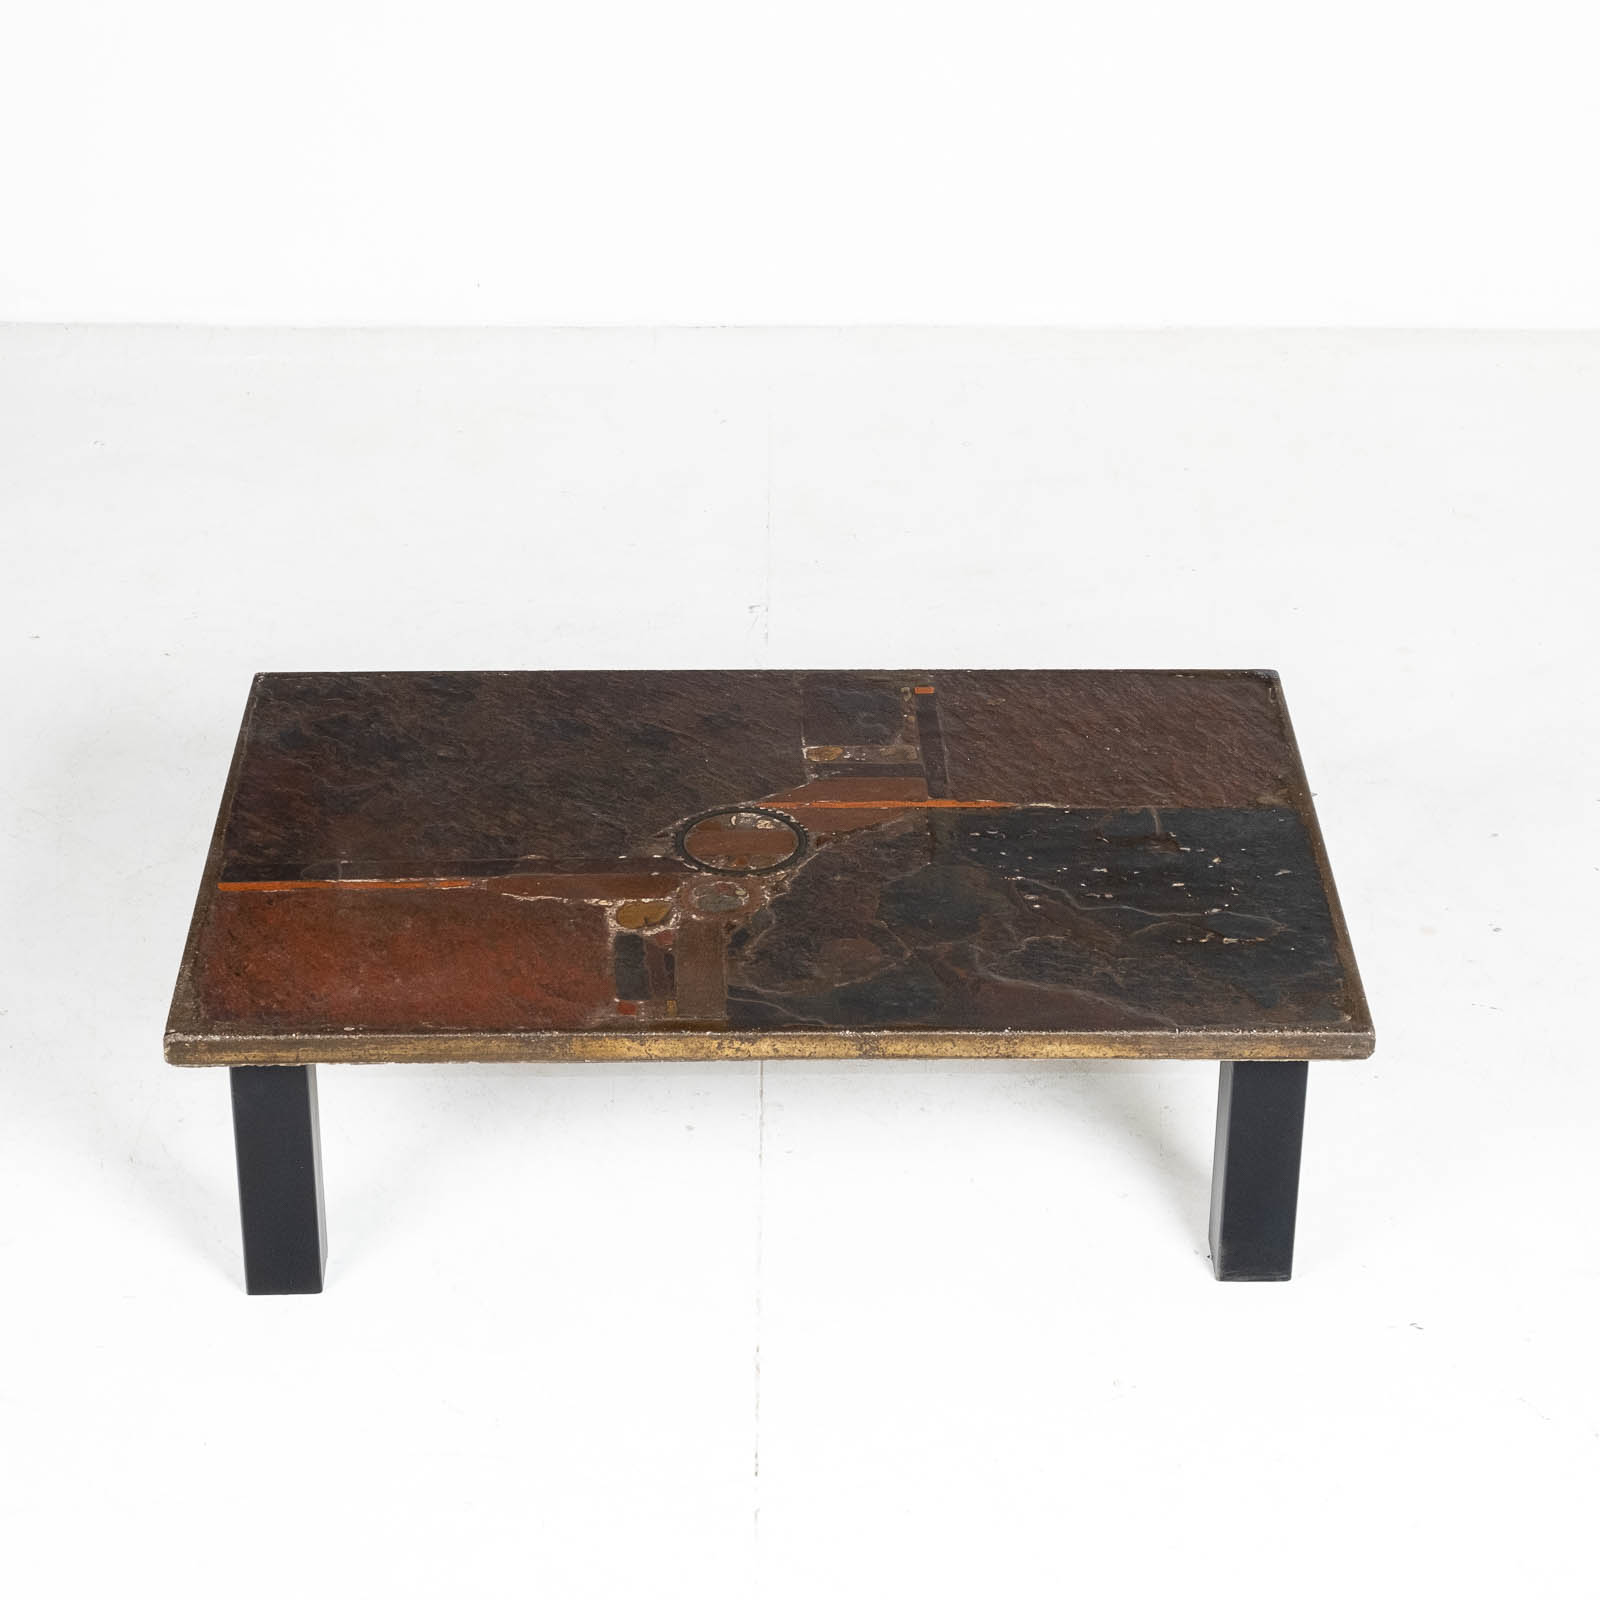 Rectangular Coffee Table By Paul Kingma In Stone And Slate, 1970s, The Netherlands 00008